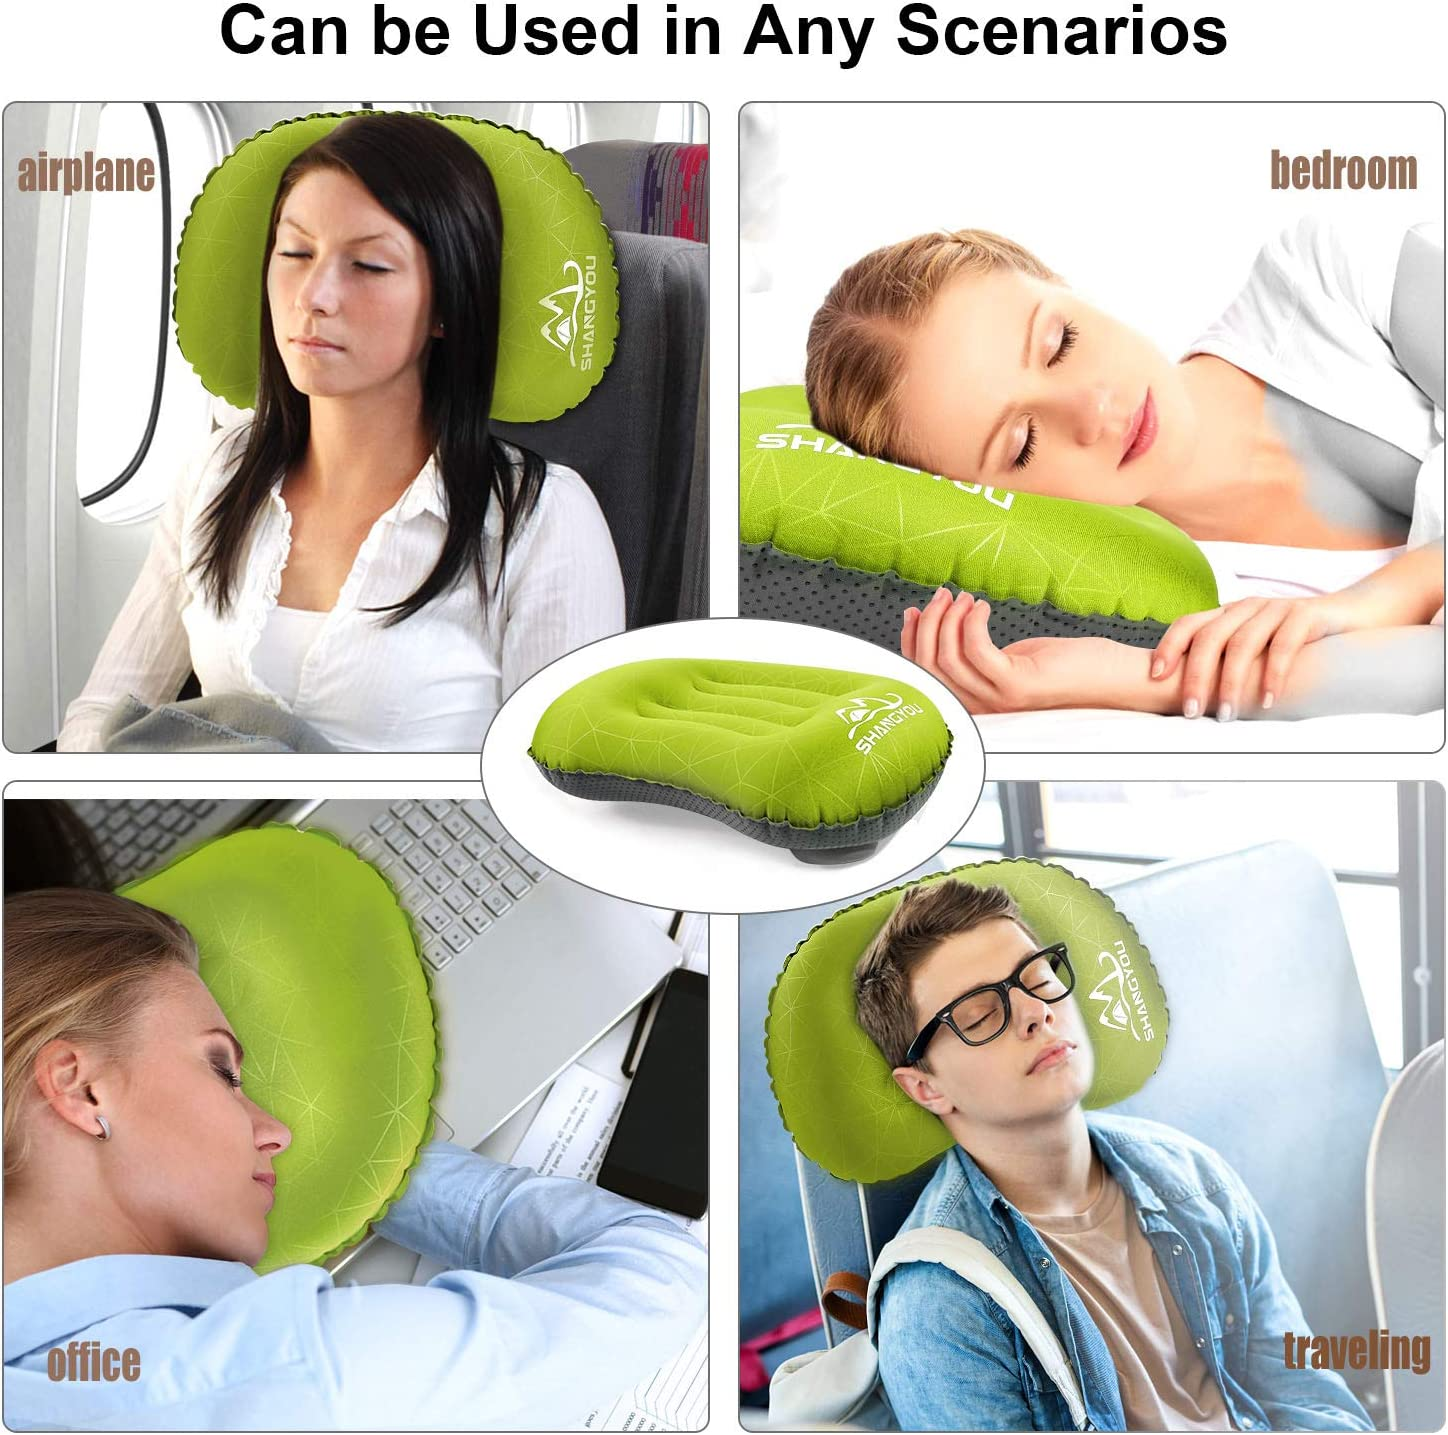 Ergonomic Neck and Lumbar Support Perfect for Hiking,Travel,Sleeping Ultralight Inflatable Camping Pillows Compressible Travel Backpacking Air Pillow Fast Inflatable by Pressing